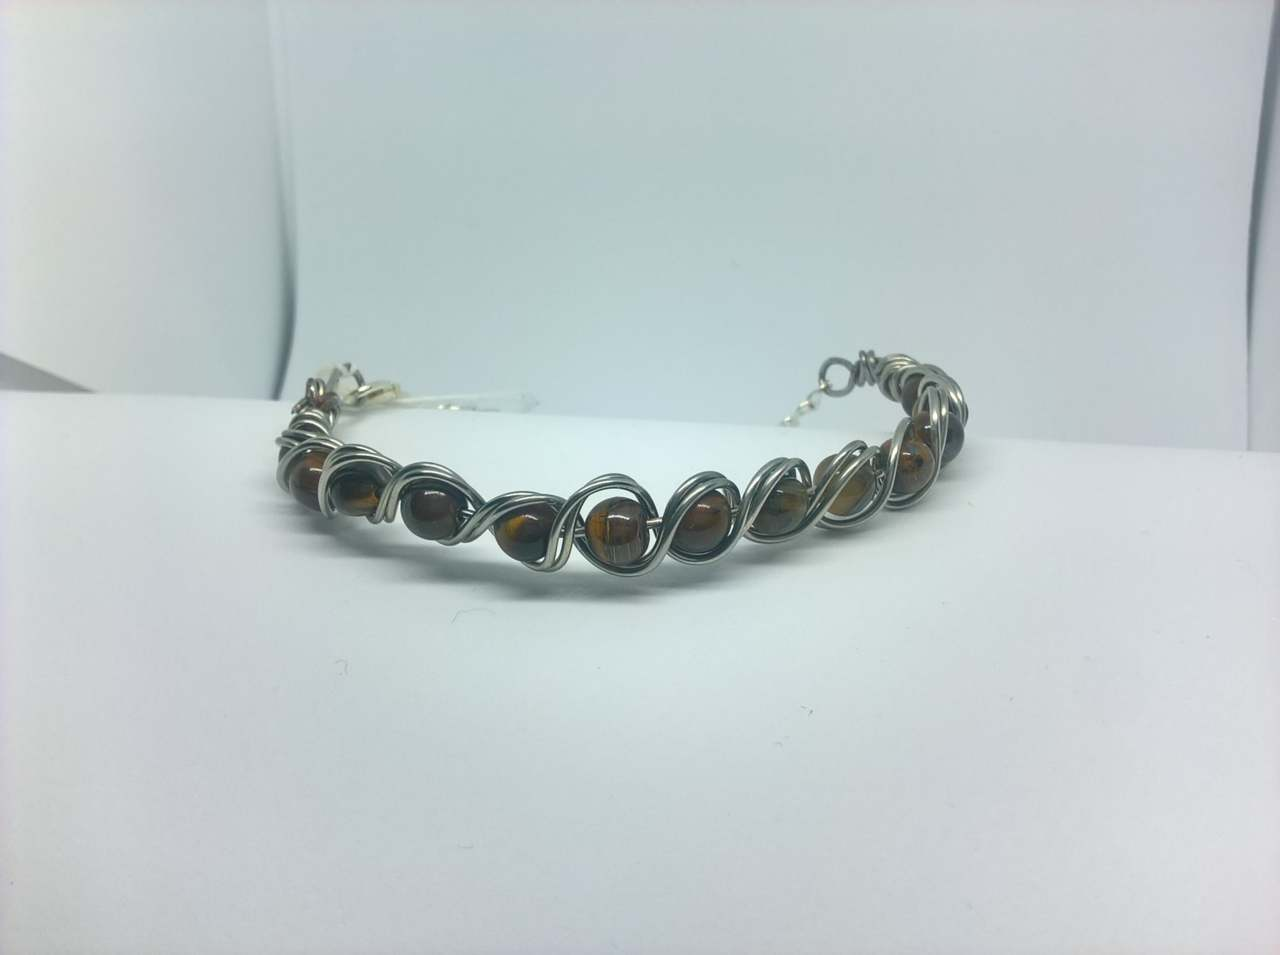 Silver Plated Tigers Eye Gemstone Braided Bracelet - Wilde About Crafts